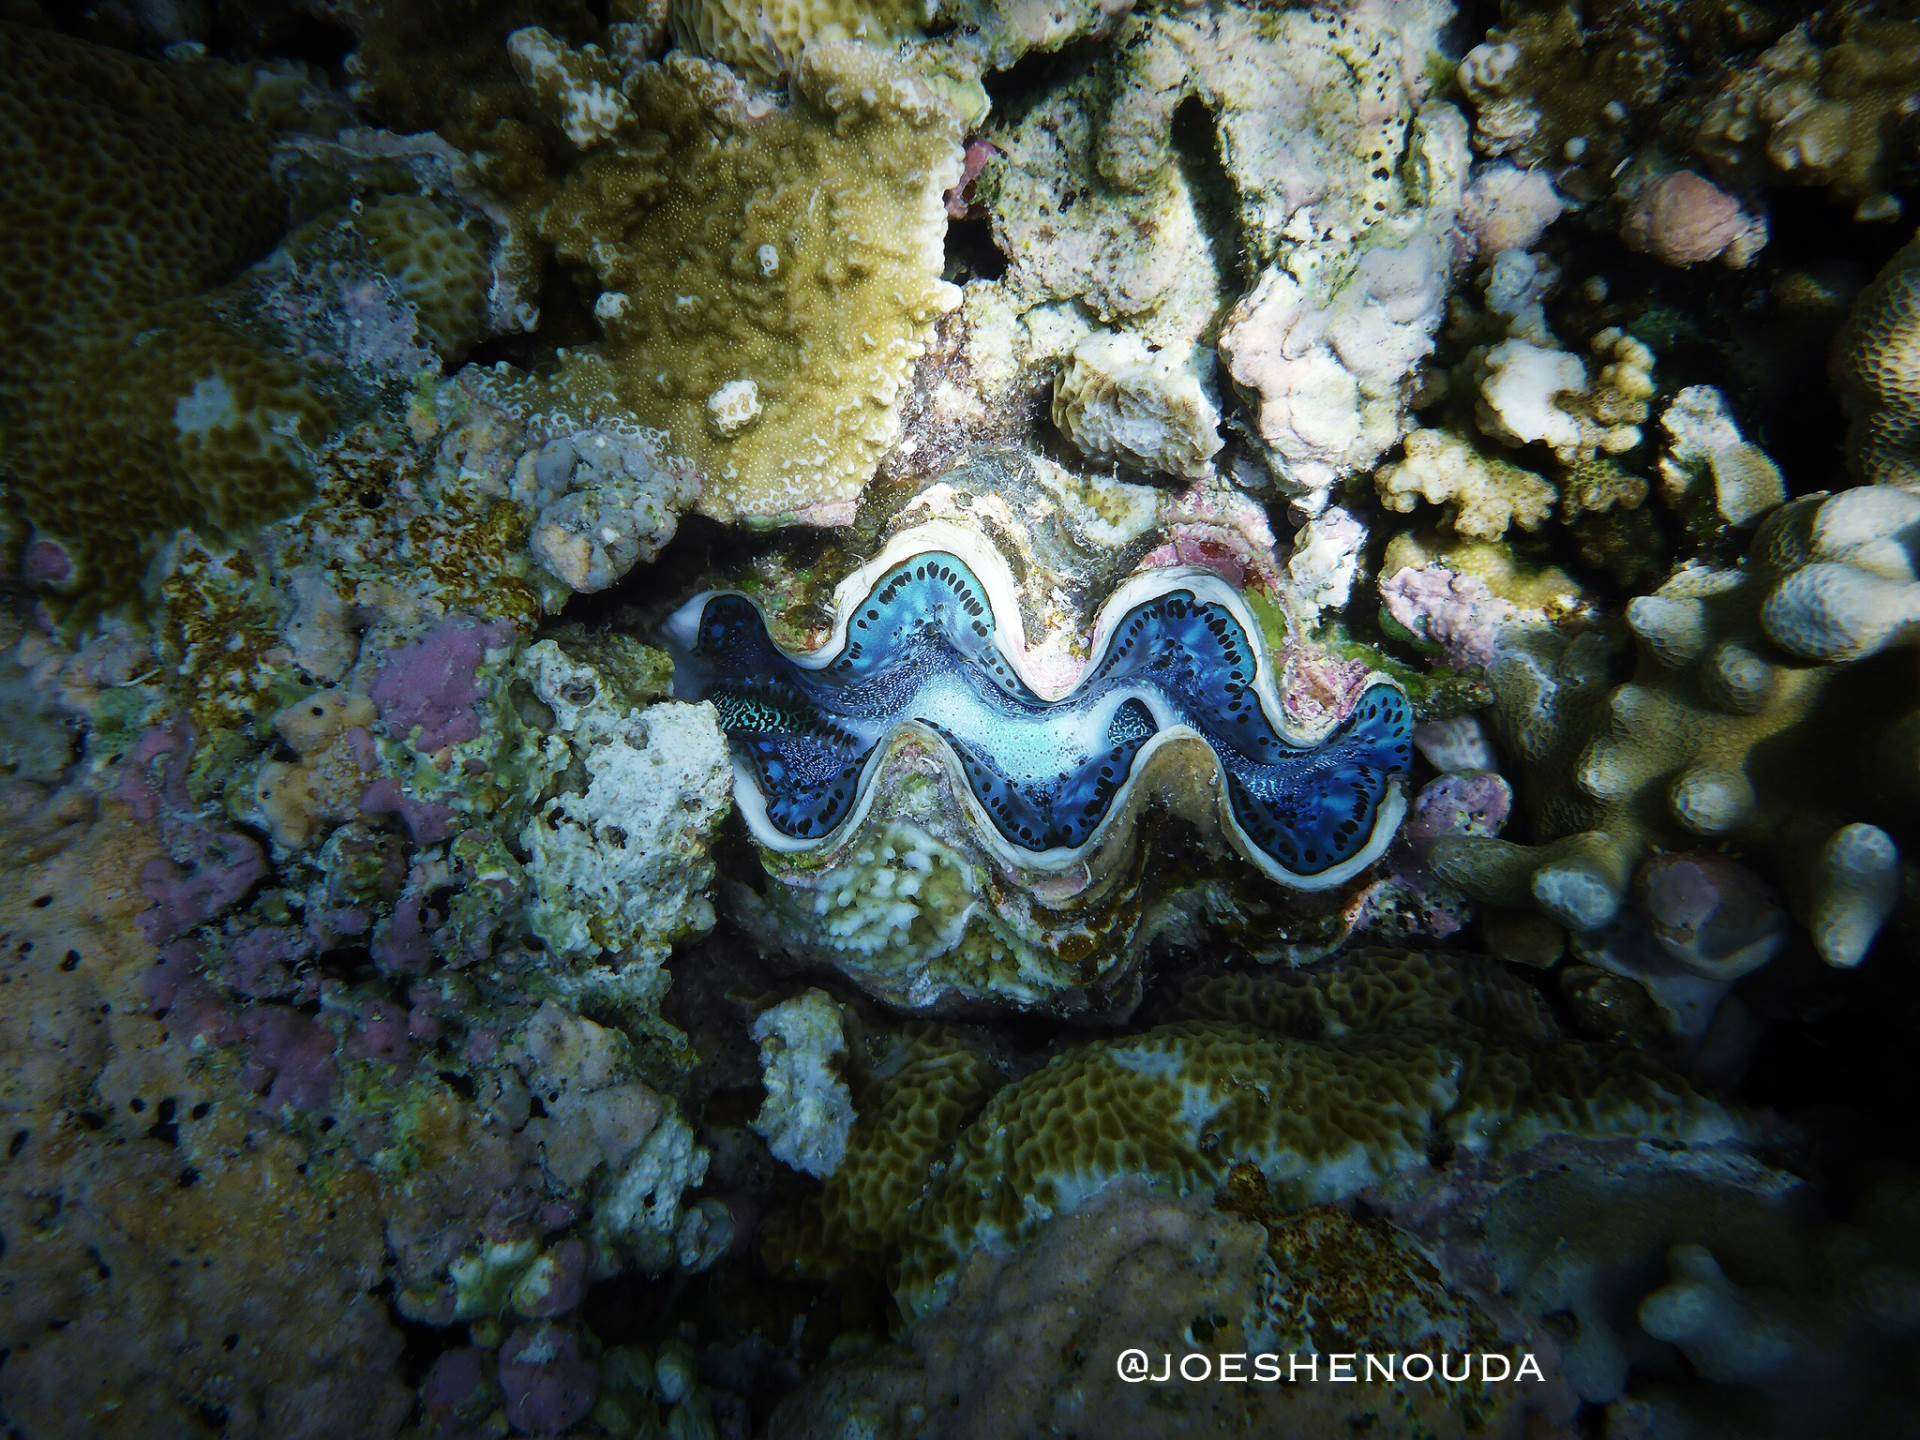 Palau 🇵🇼 is home to 8️⃣ of the 🔟 known species of giant clams 🐚 , making it one of the epicenters of giant clam diversity in the world 🌎 .